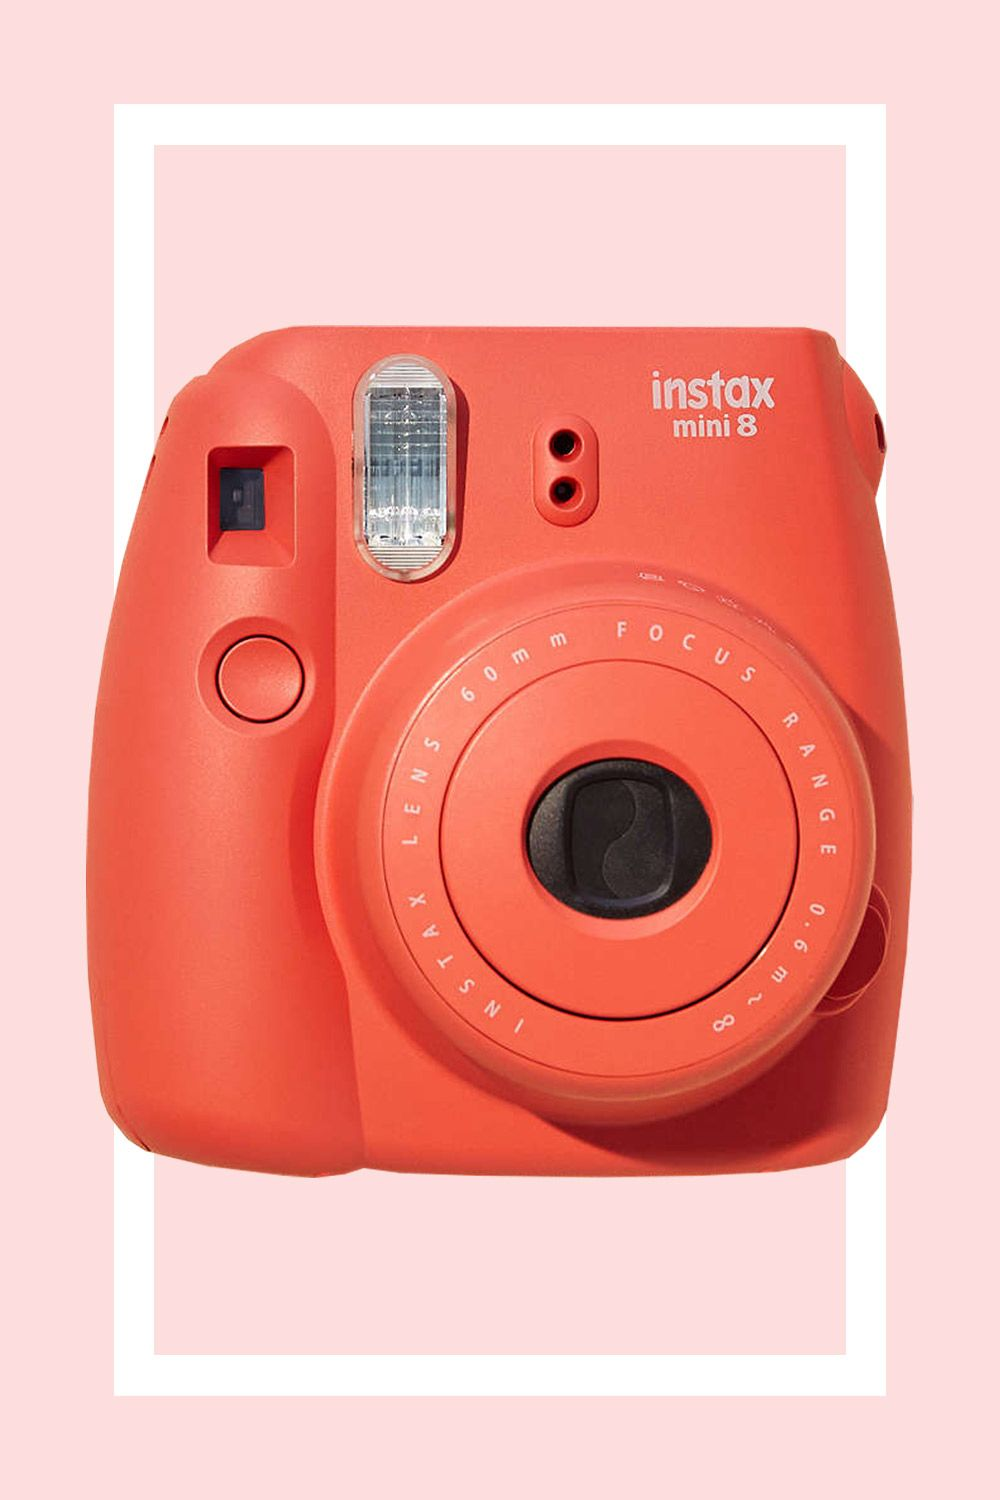 "<p>The newest of Fujifilm's rainbow assortment of cameras is super portable and easy to grip in your hands. Plus, the primo photo quality is not so shabby for a camera under $100.</p><p><strong>Fujifilm Instax Mini 8 Instant Camera, $70; <a href=""http://www.urbanoutfitters.com/urban/catalog/productdetail.jsp?id=27913557&category=APARTMENT_MEDIA"">urbanoutfitters.com</a>. </strong></p>"